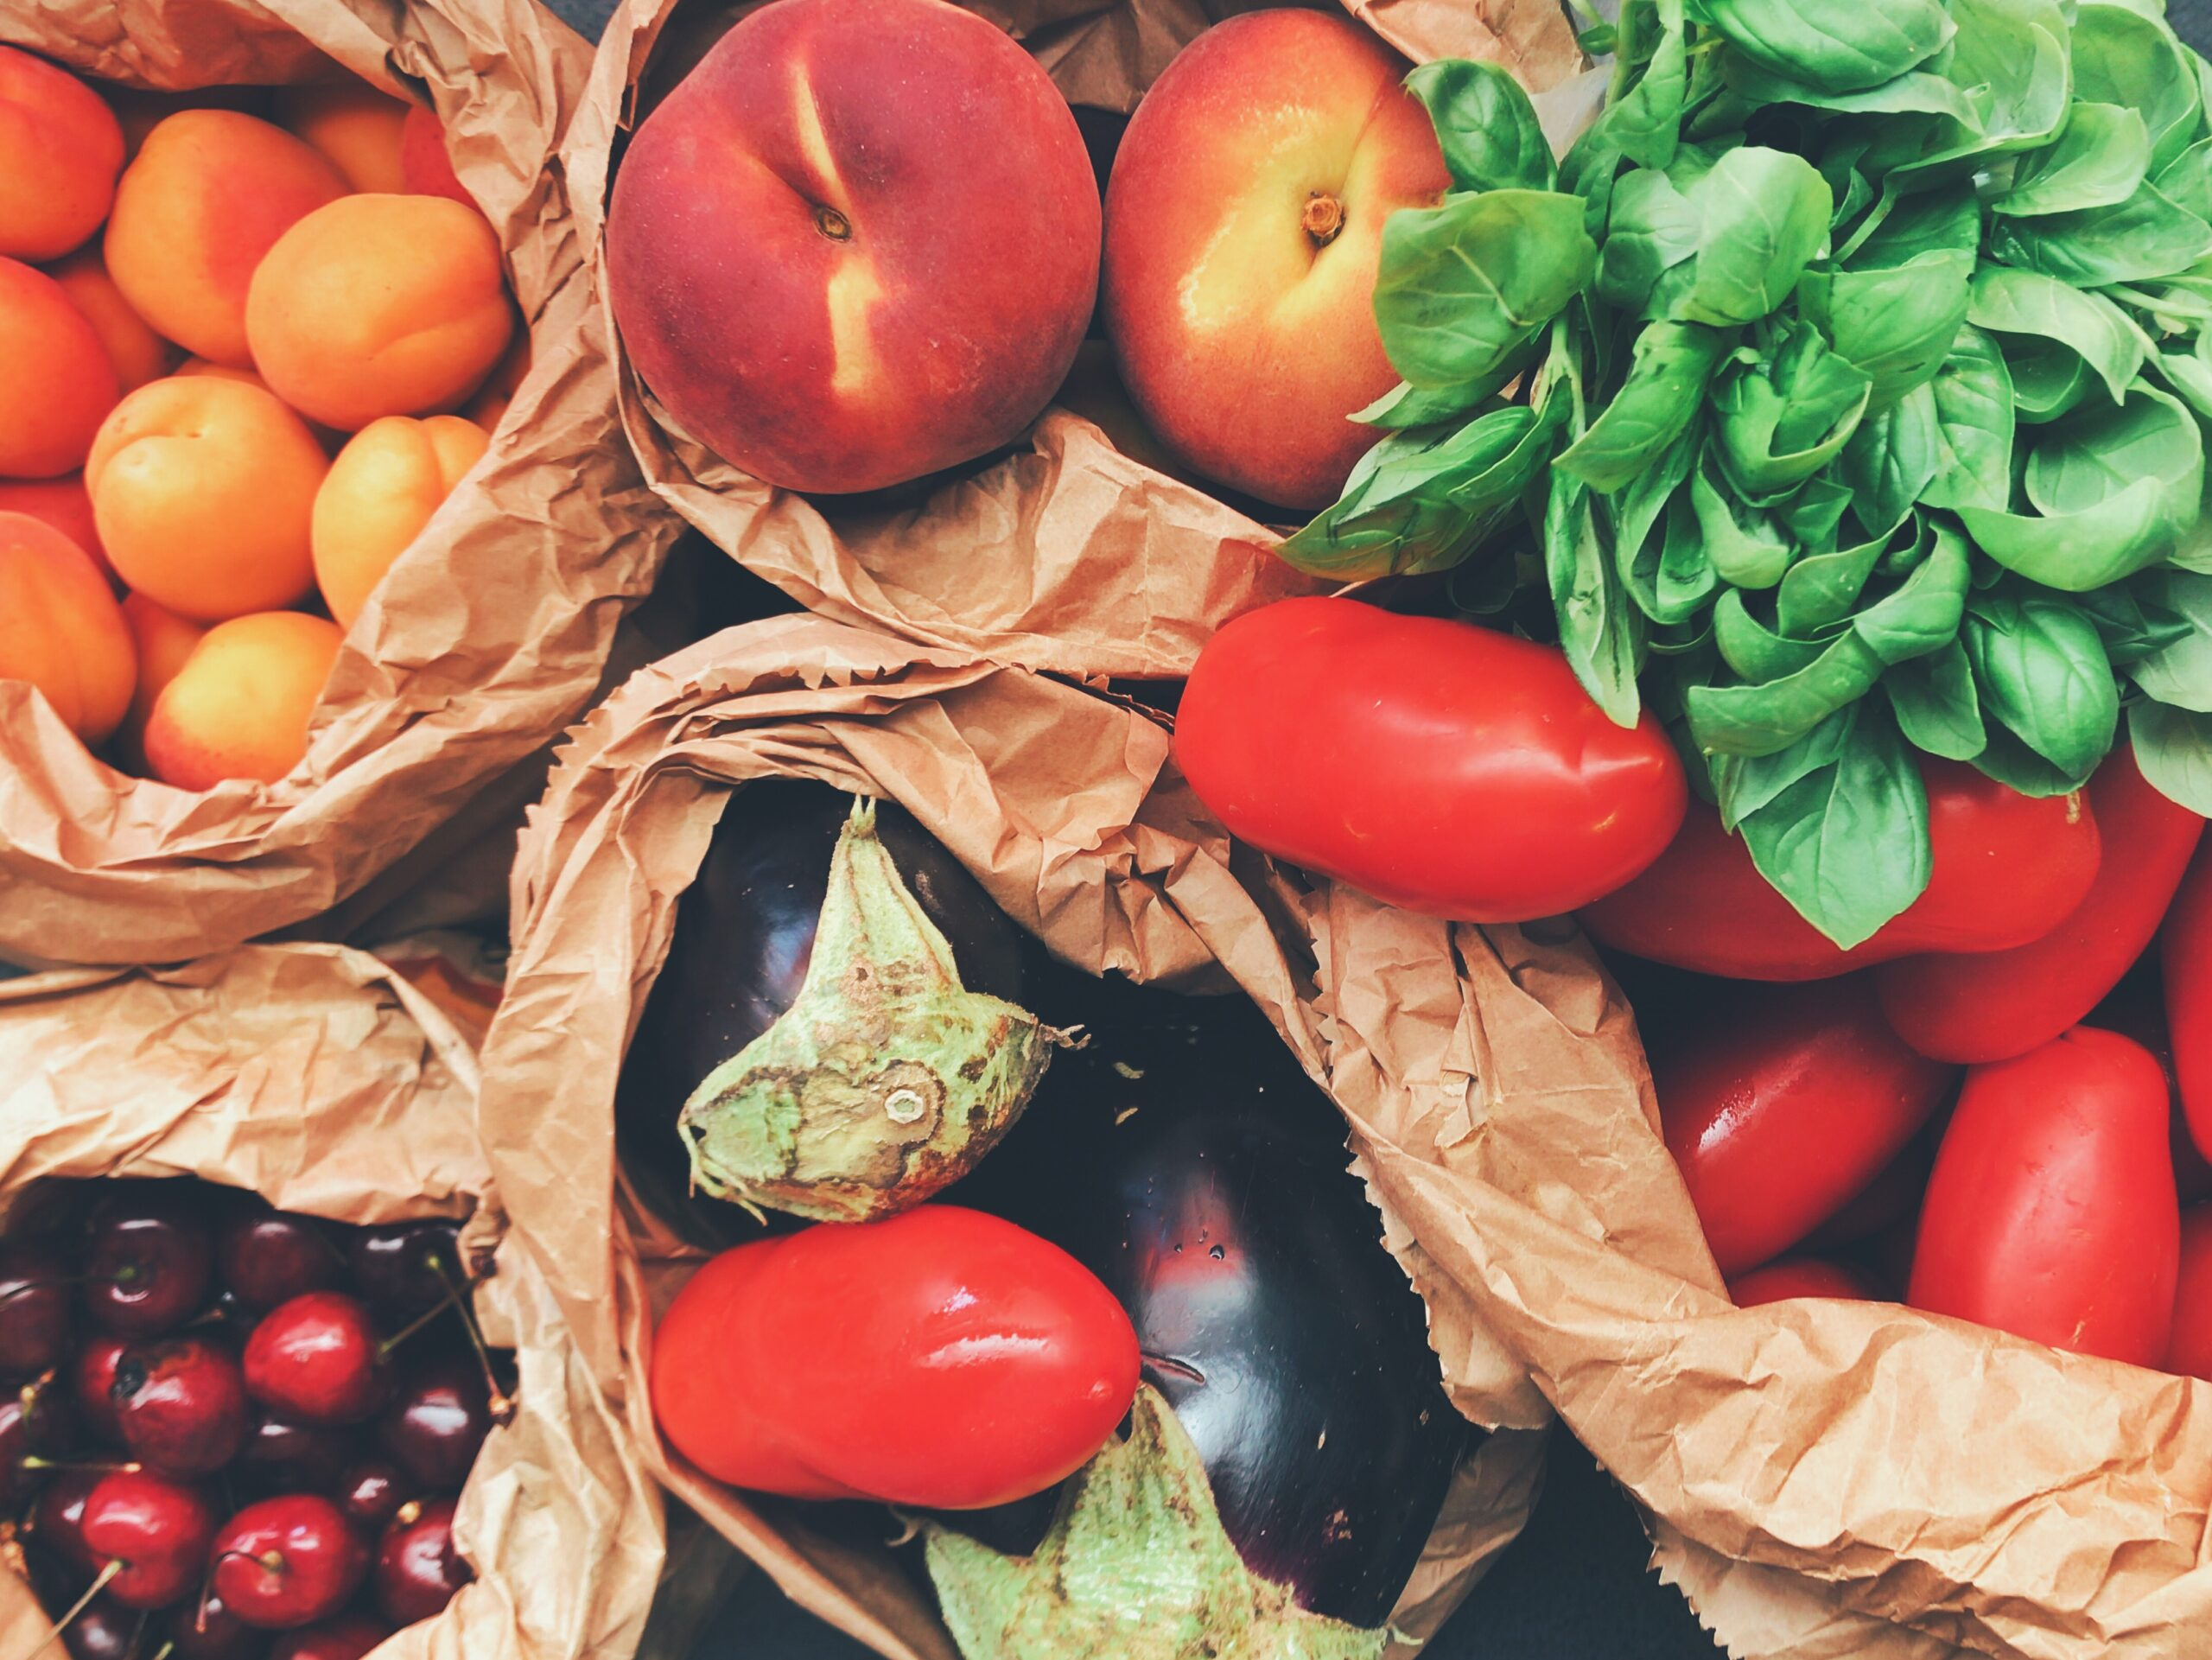 The Amazing Benefits of Eating Healthy and Detoxifying With Little Effort and Staying Healthy